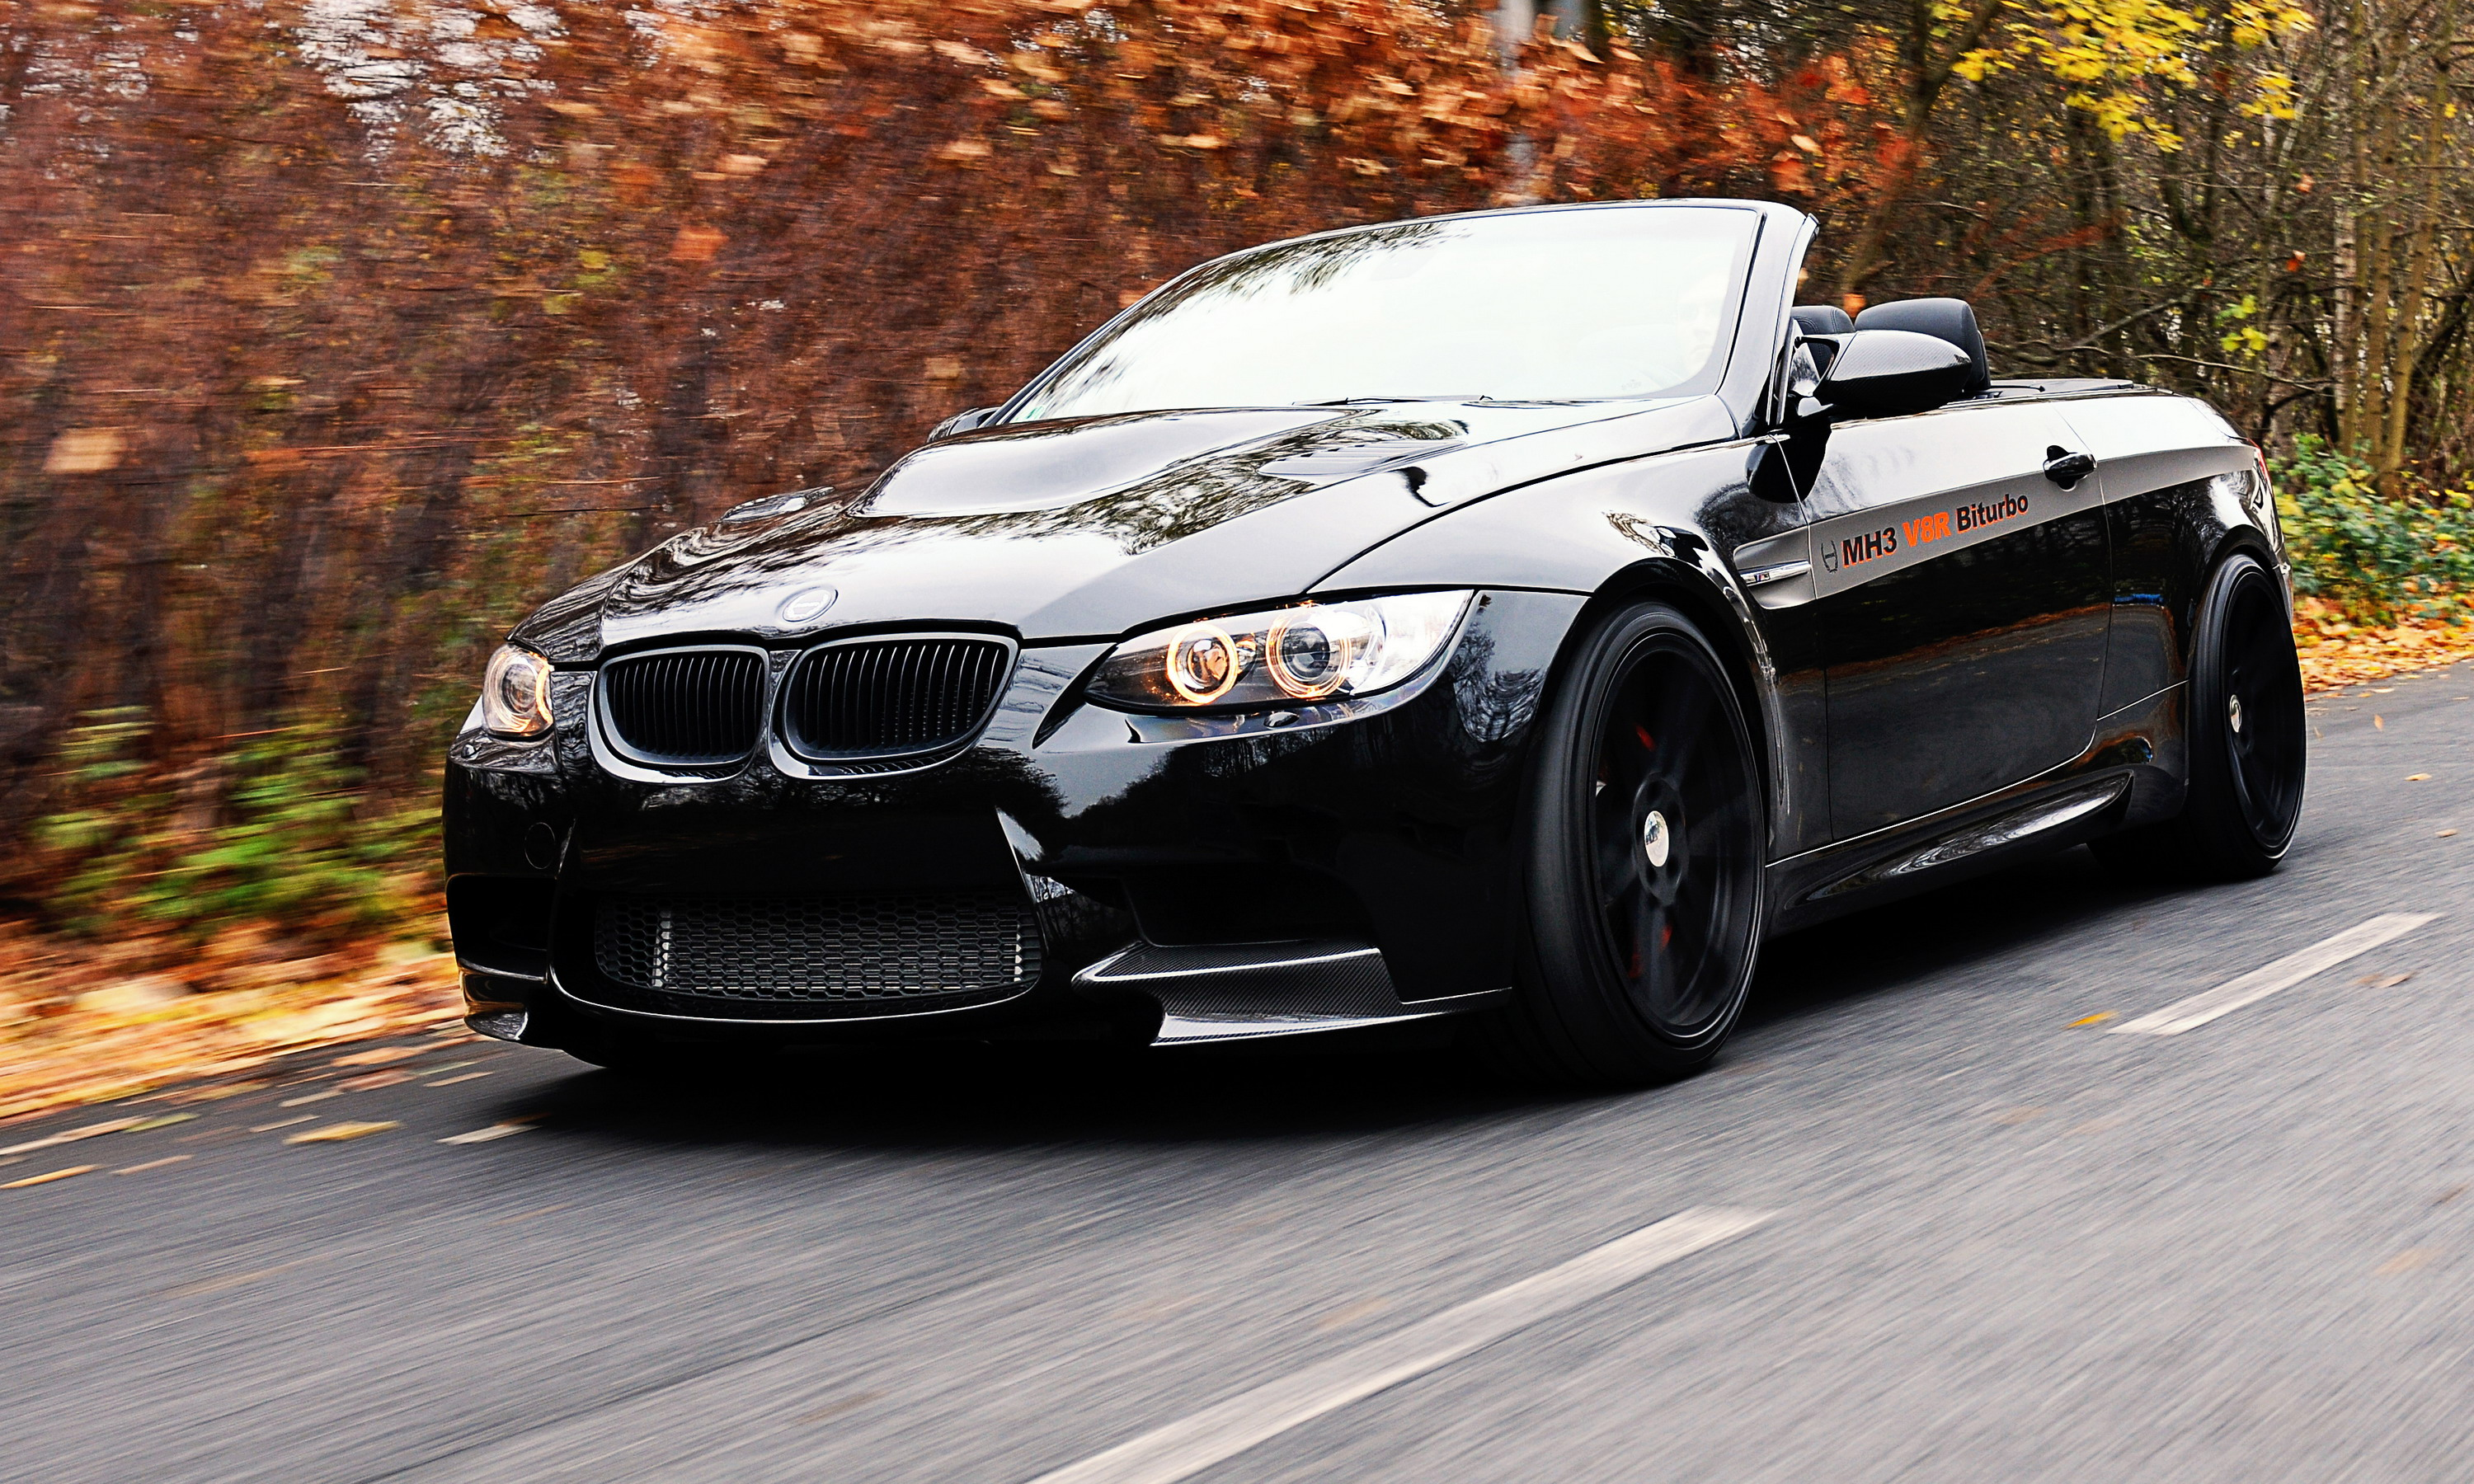 2013 Bmw Mh3 V8 R Biturbo Cabriolet By Manhart Racing